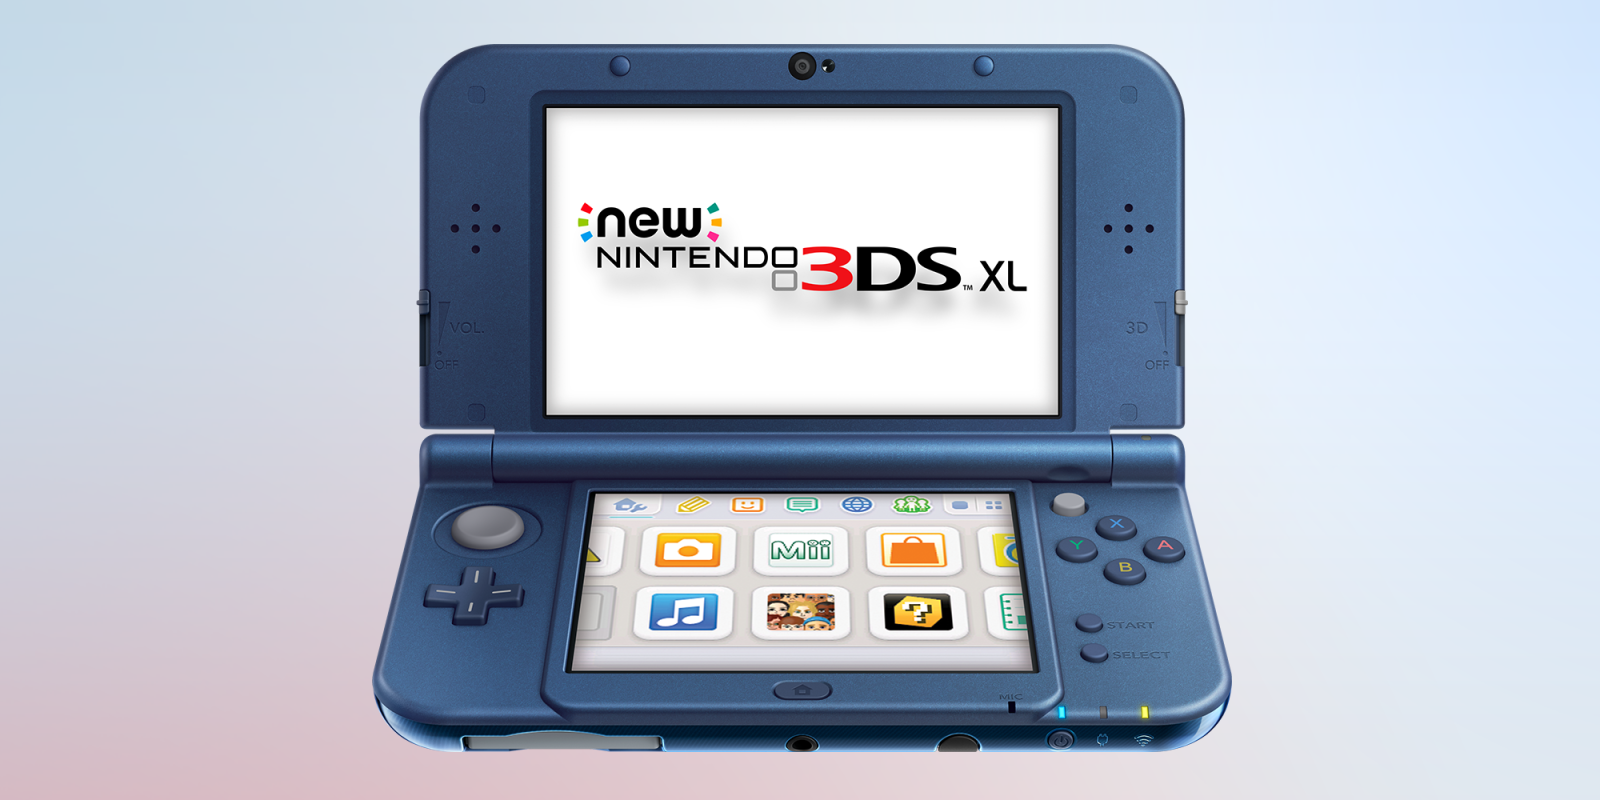 H2x1_3DS_SystemLandingPage_New3DSXL_v02.png